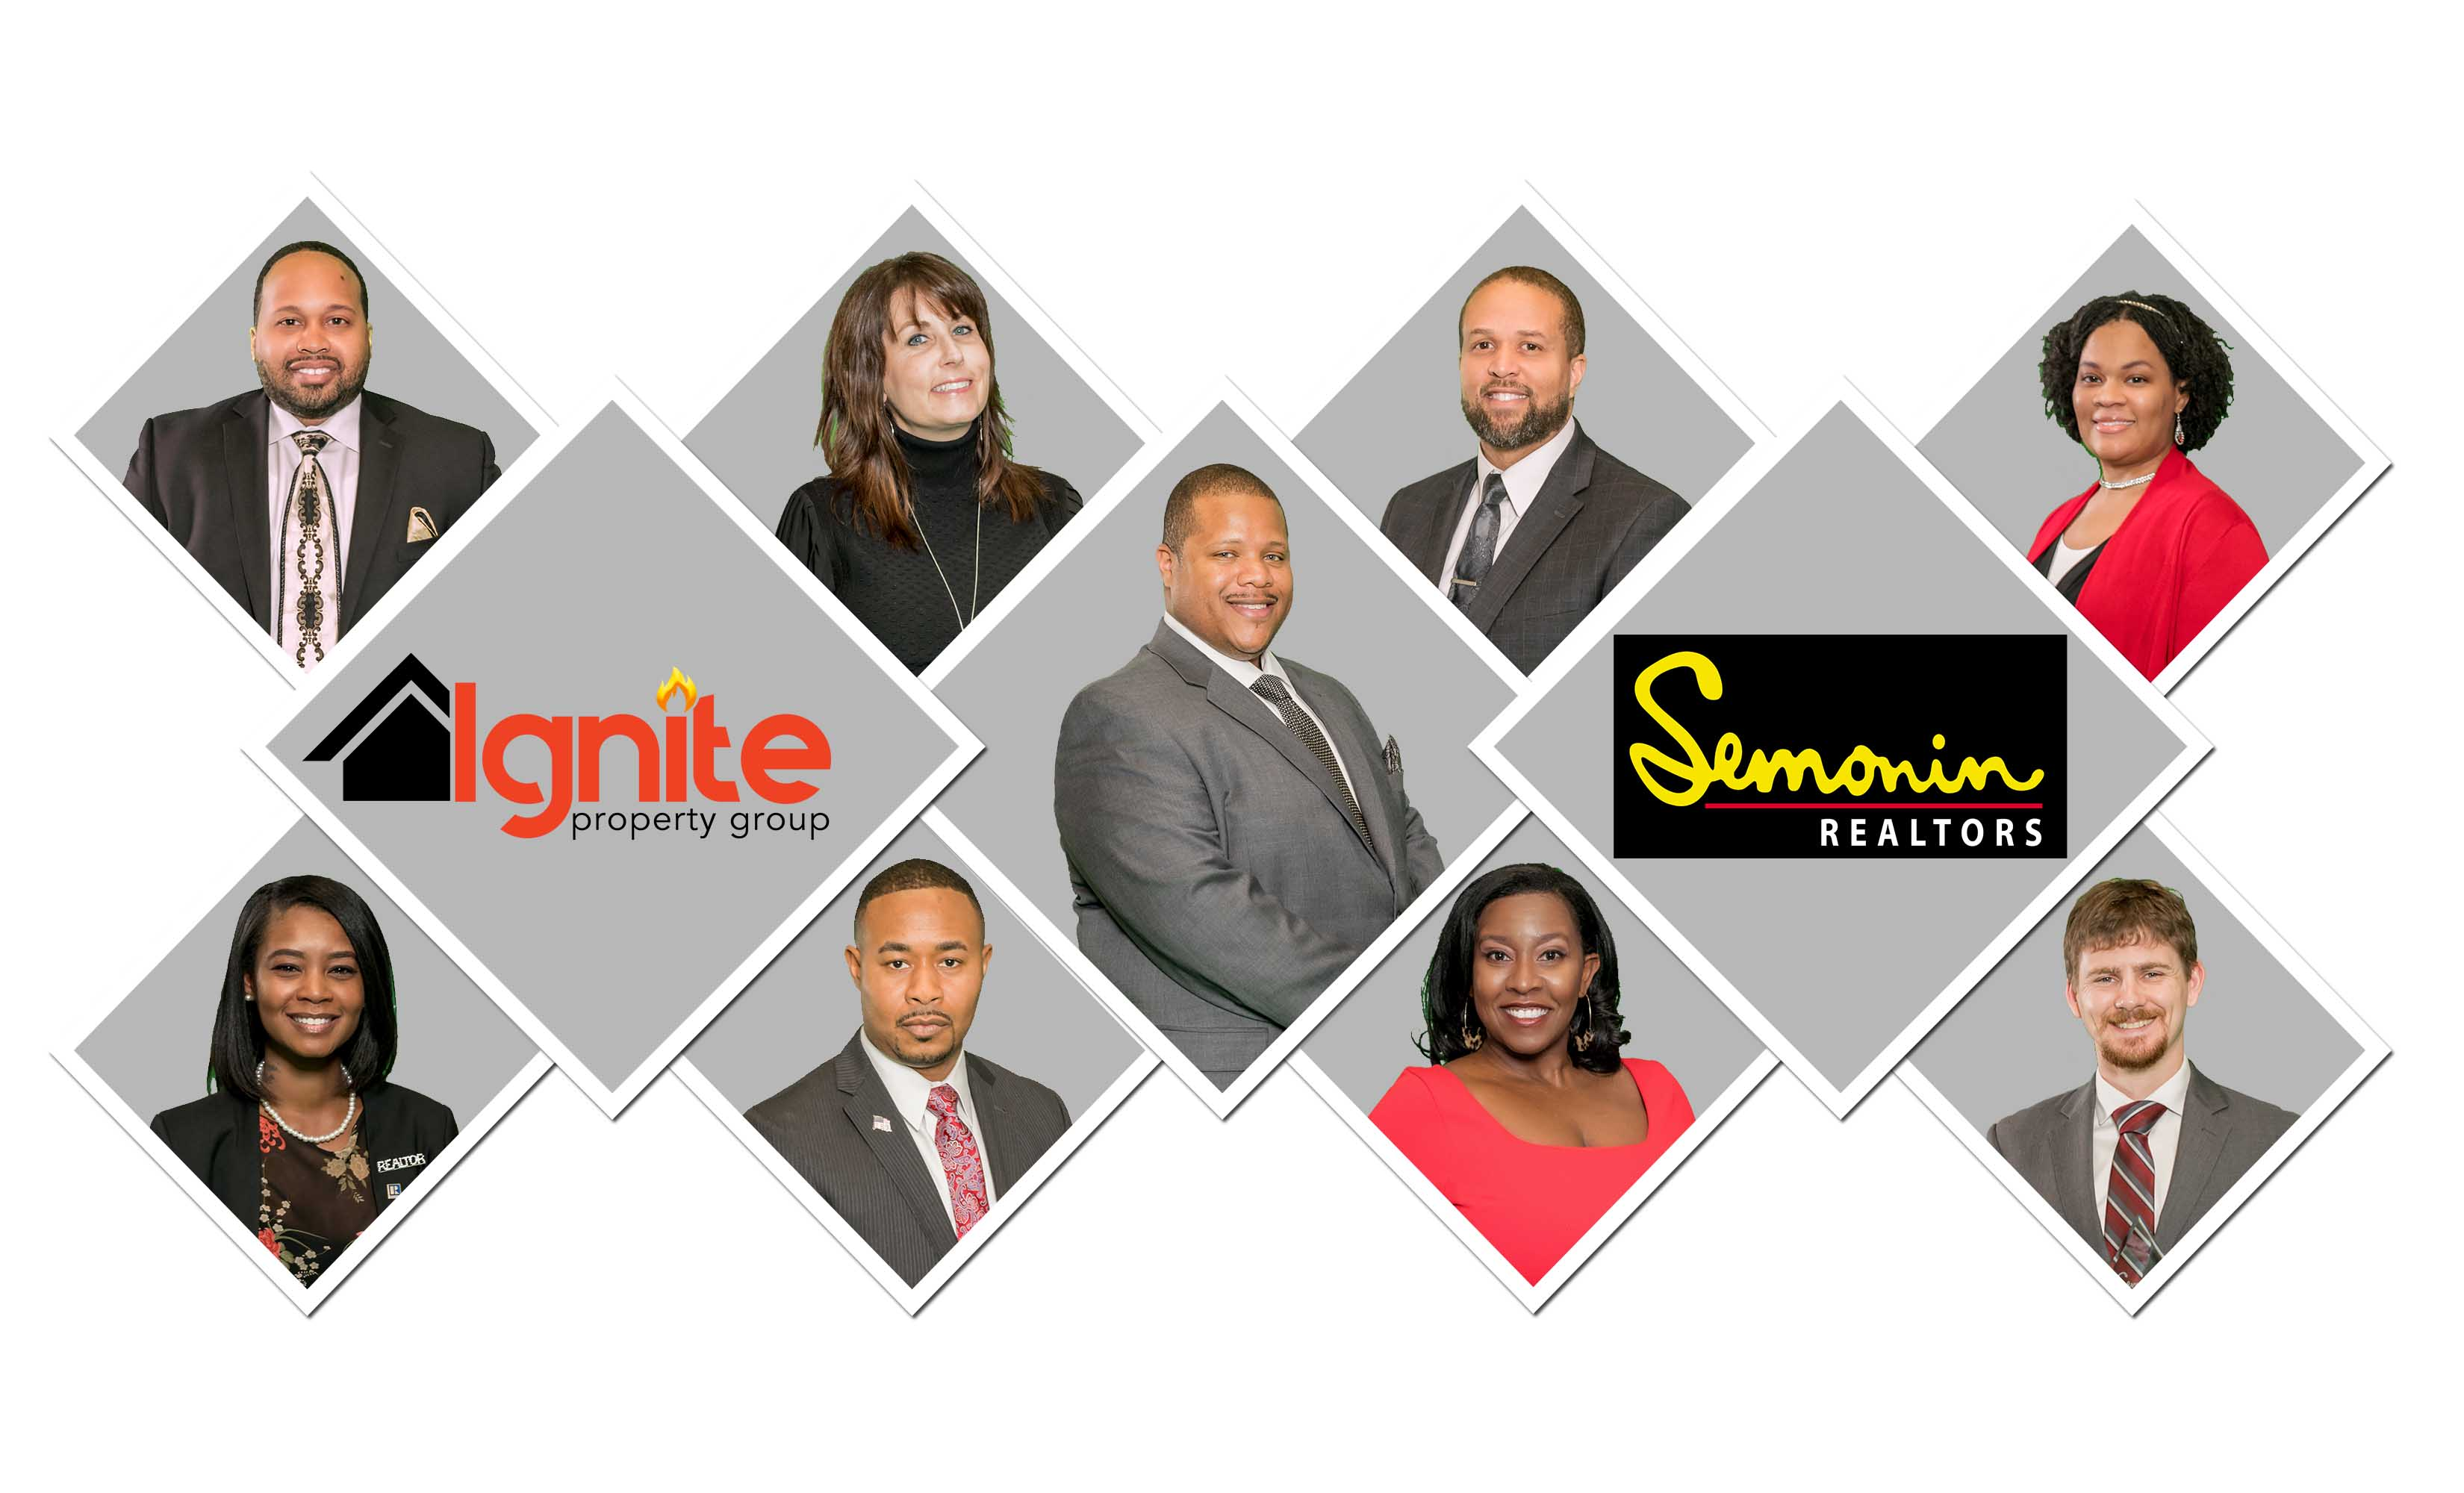 Ignite Property Group